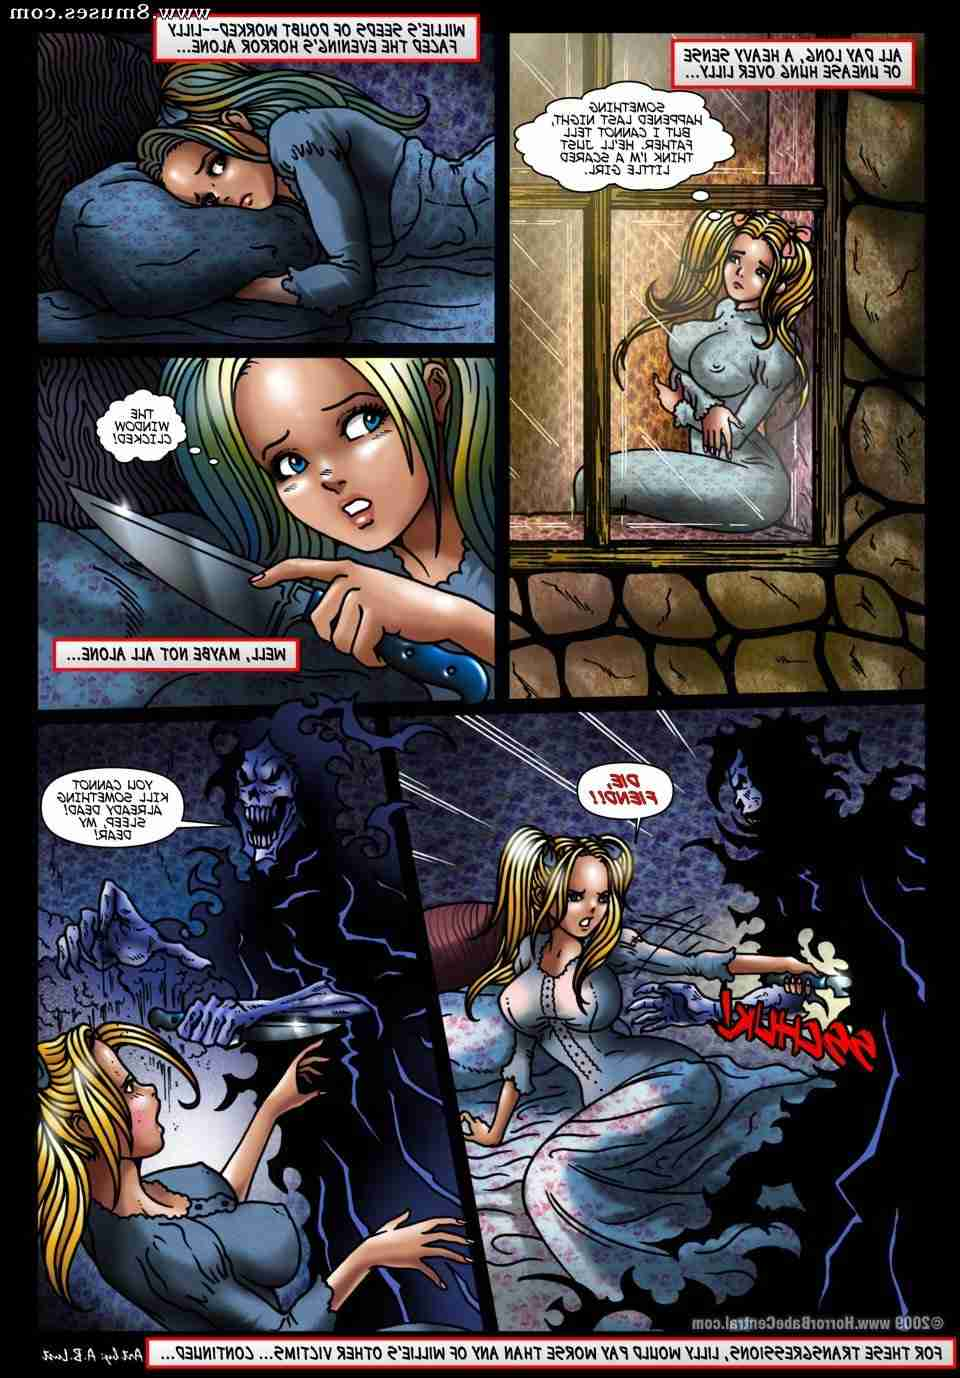 Central-Comics/Horror-Babe-Central/Fable-of-Fright Fable_of_Fright__8muses_-_Sex_and_Porn_Comics_146.jpg